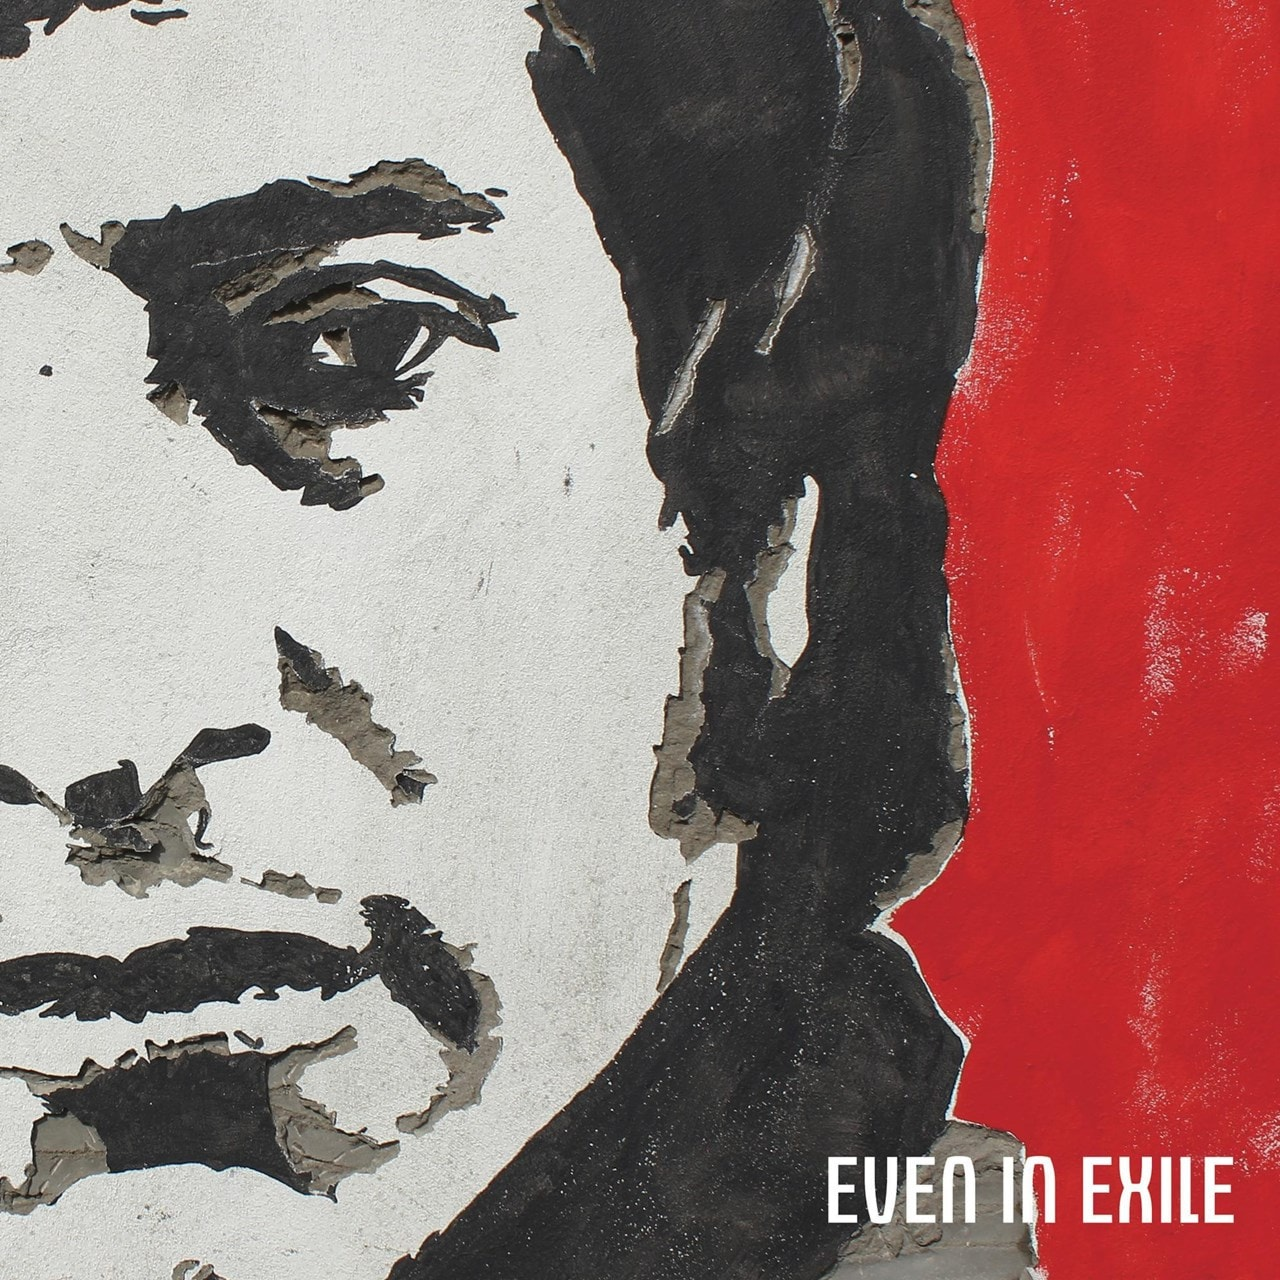 "Even in Exile - Includes hmv Exclusive 7"" Single - 1"